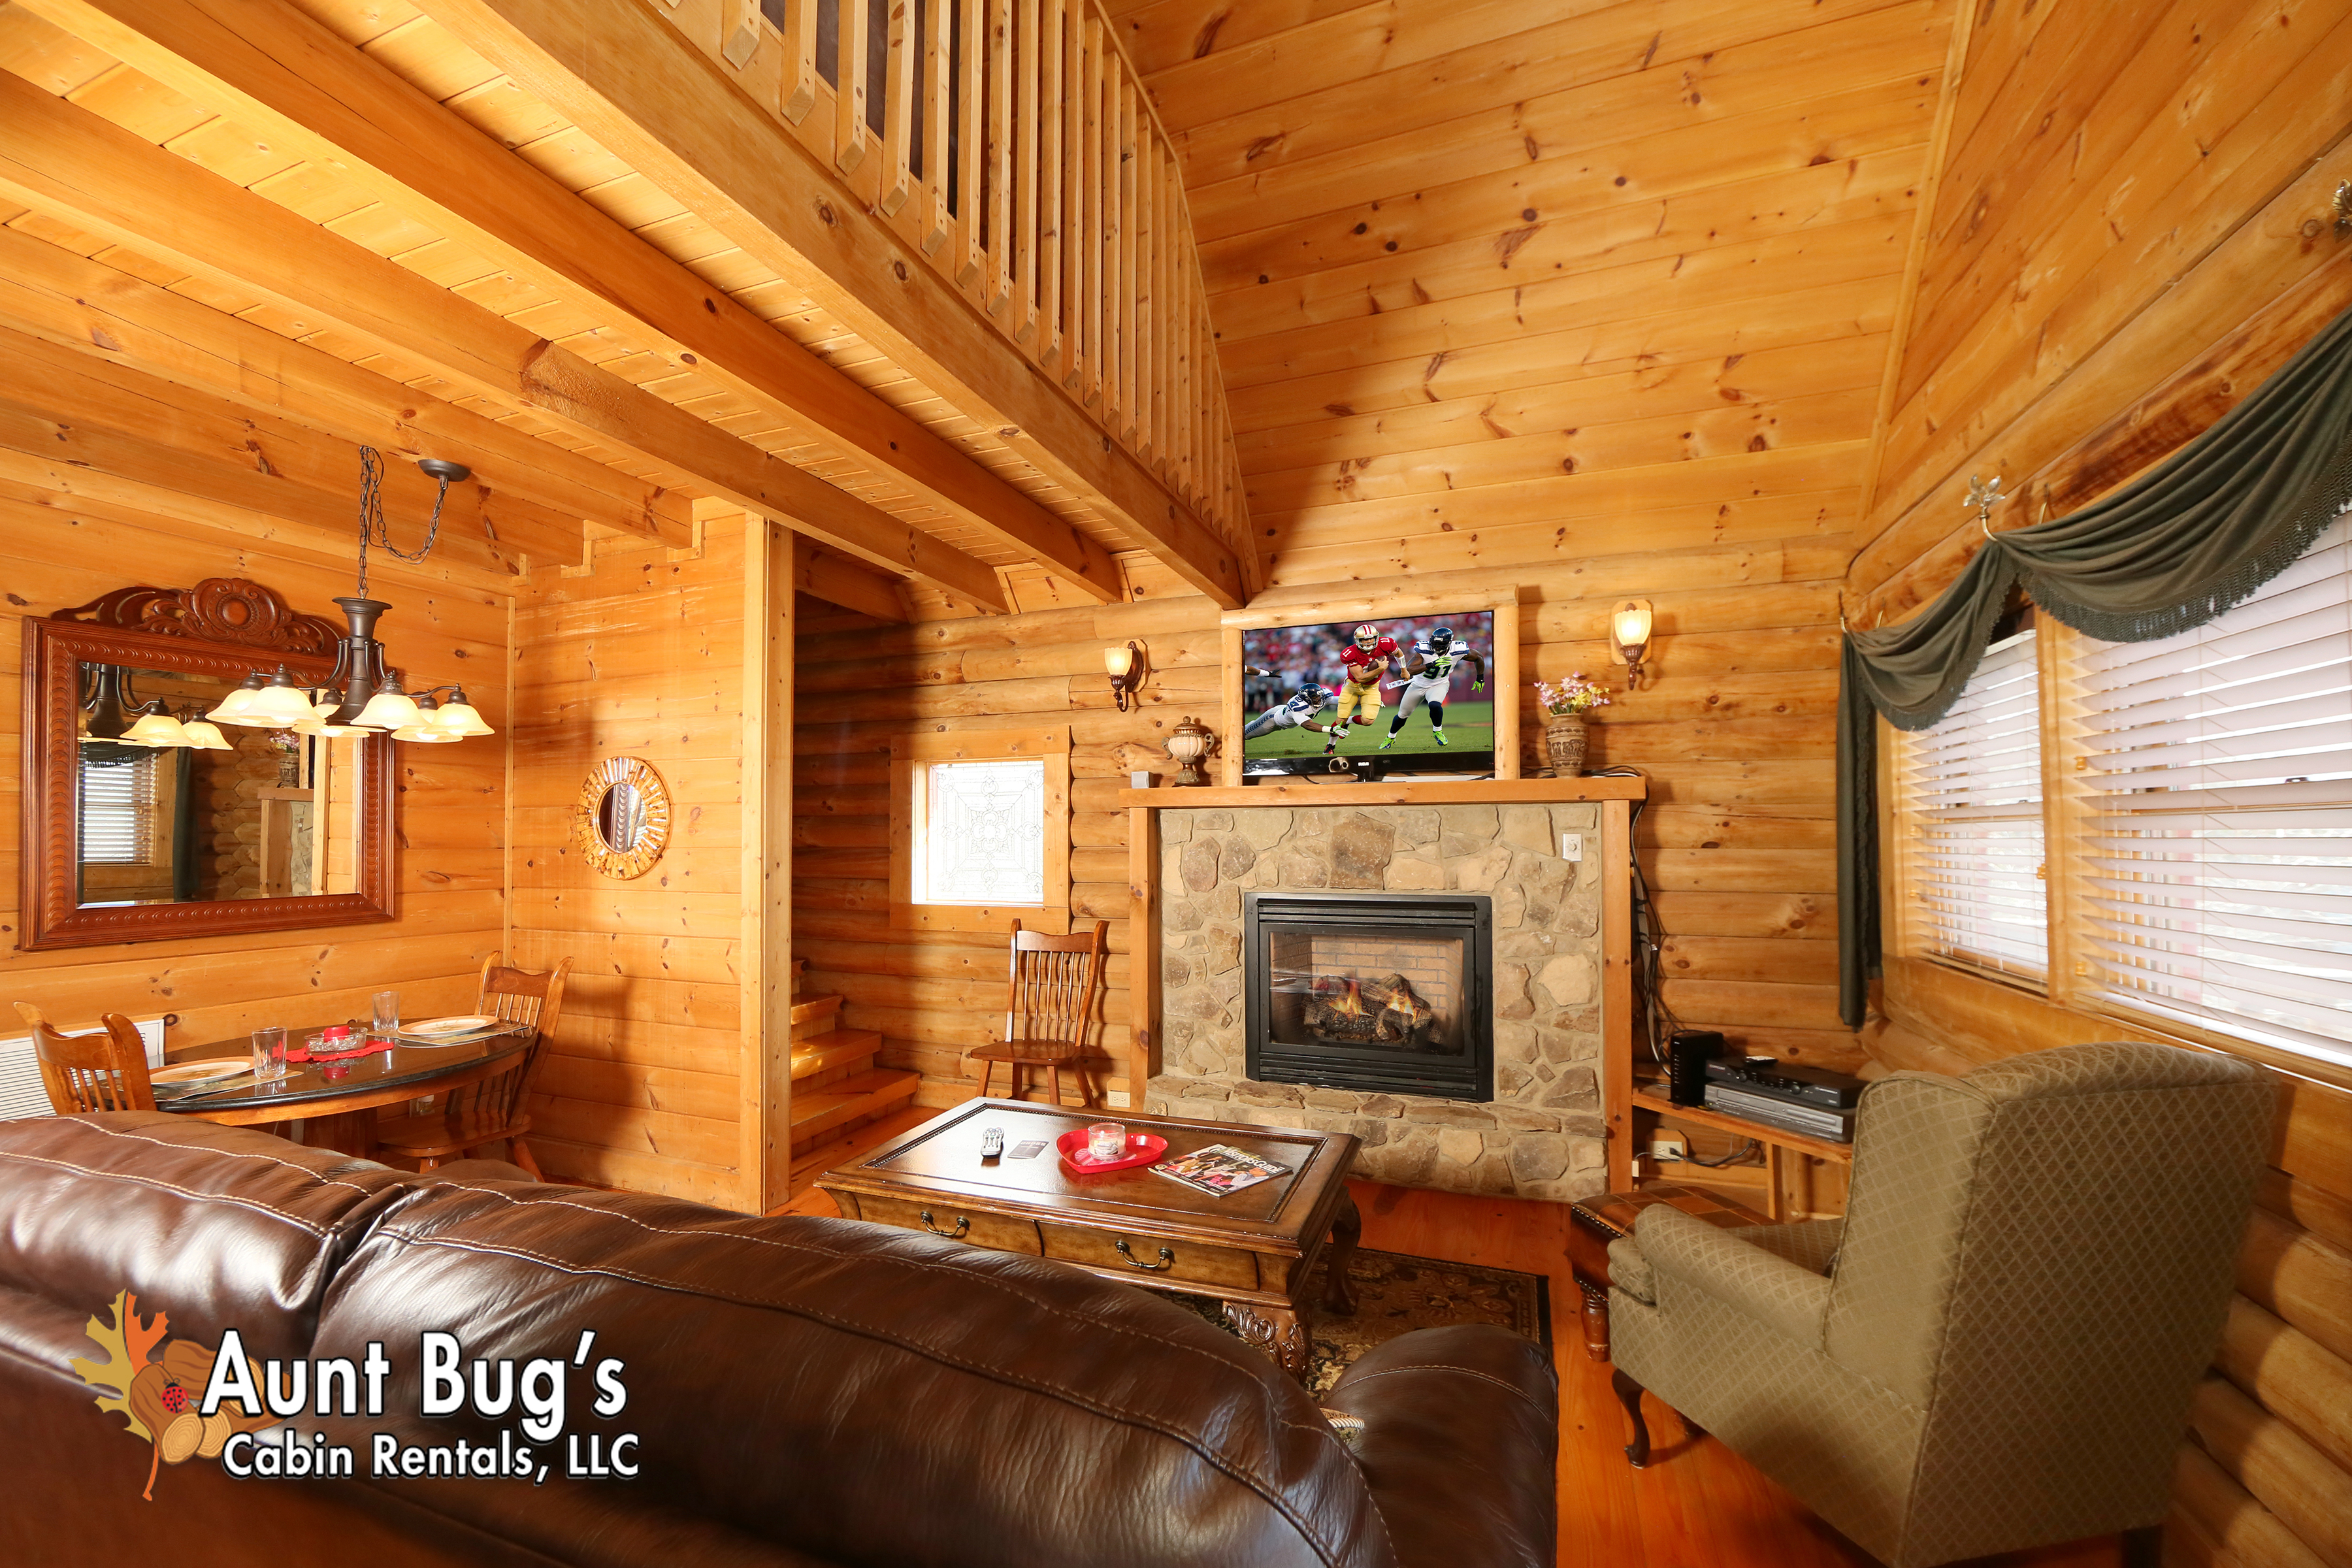 lakes there dale point pinterest resorts vacation pin cabin lake and cabins star been hollow rentals resort